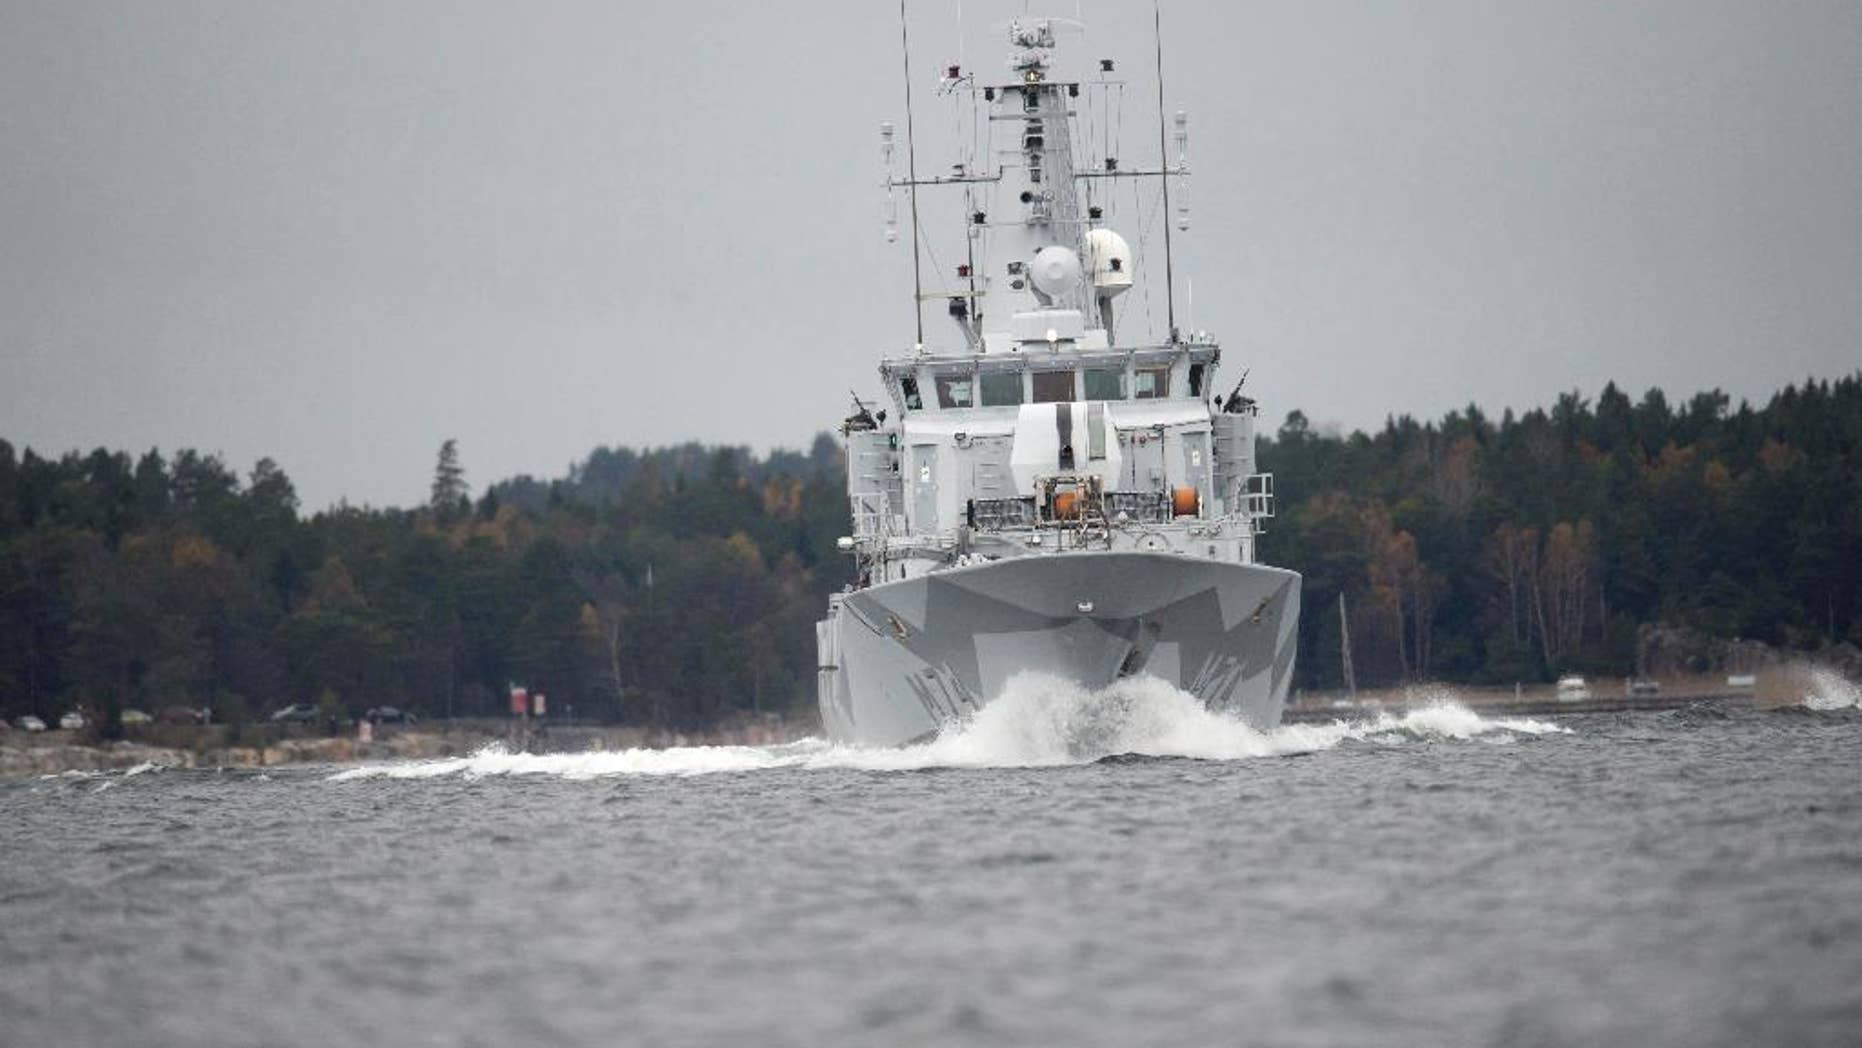 CORRECTS YEAR - The Swedish minesweeper HMS Kullen under way in Namdo Bay, Sweden, Tuesday, Oct. 21, 2014 on their fifth day of searching for a suspected foreign vessel in the Stockholm archipelago. The navy has demanded a 1000-meter, (yard) no-go radius around naval vessels taking part in the current operation. (AP Photo/Fredrik Sandberg)   SWEDEN OUT